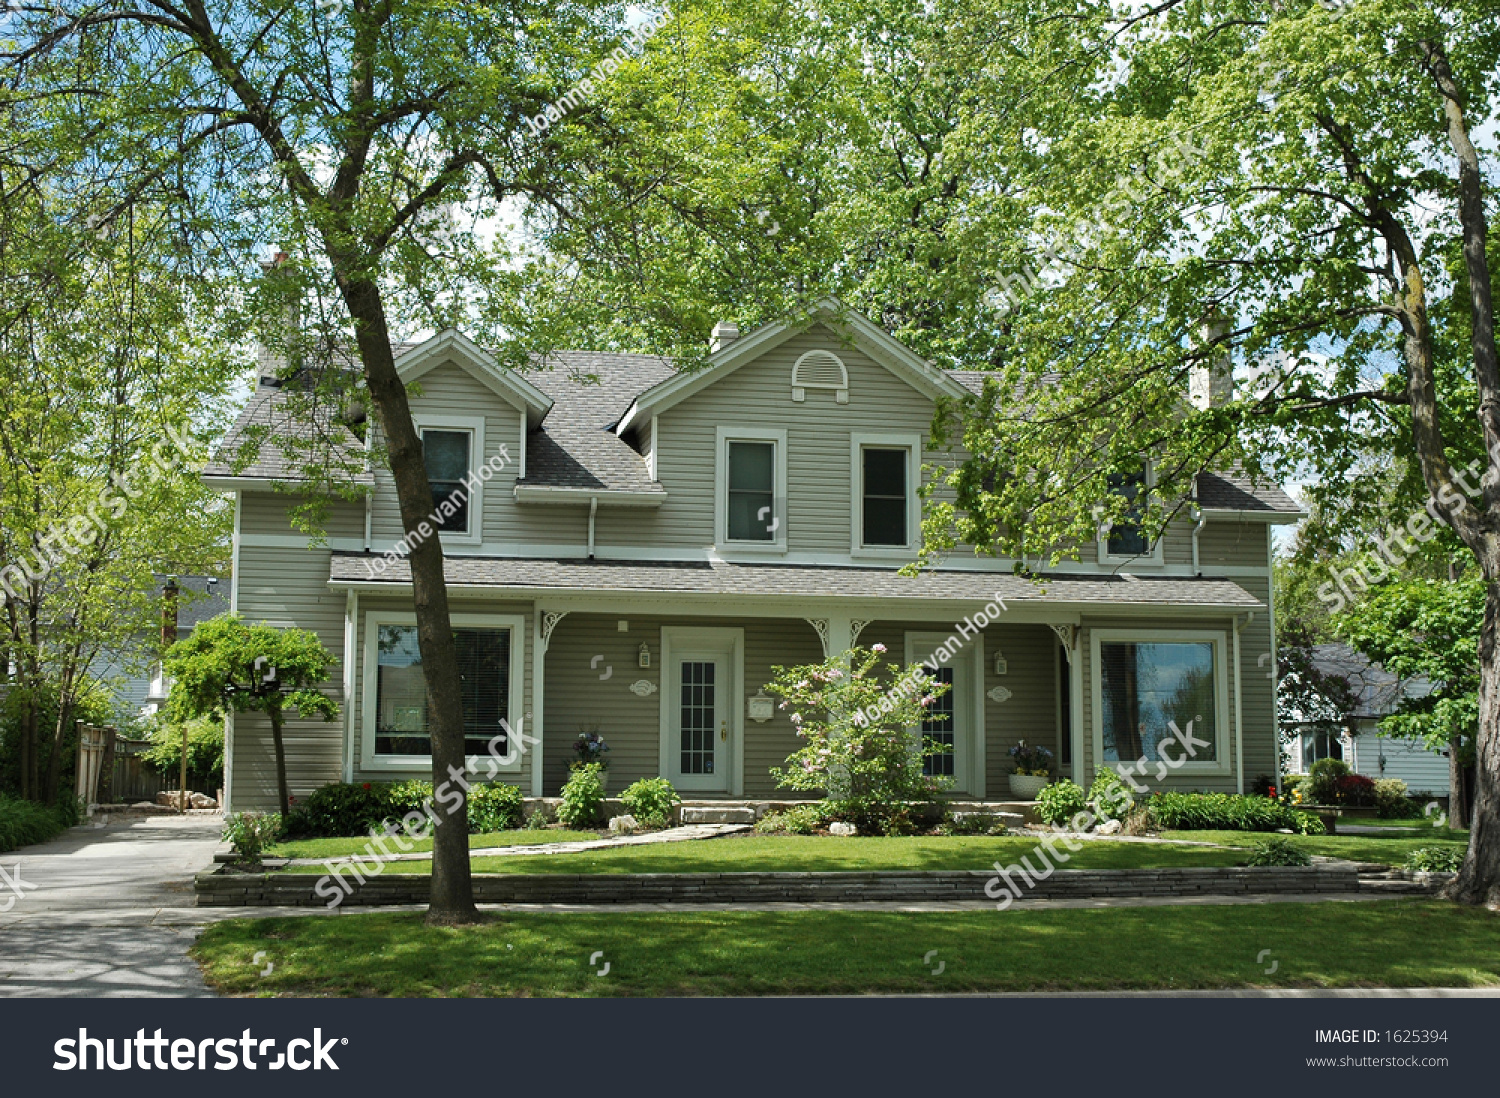 Double semi house white trim beige stock photo 1625394 shutterstock - White house green trim ...